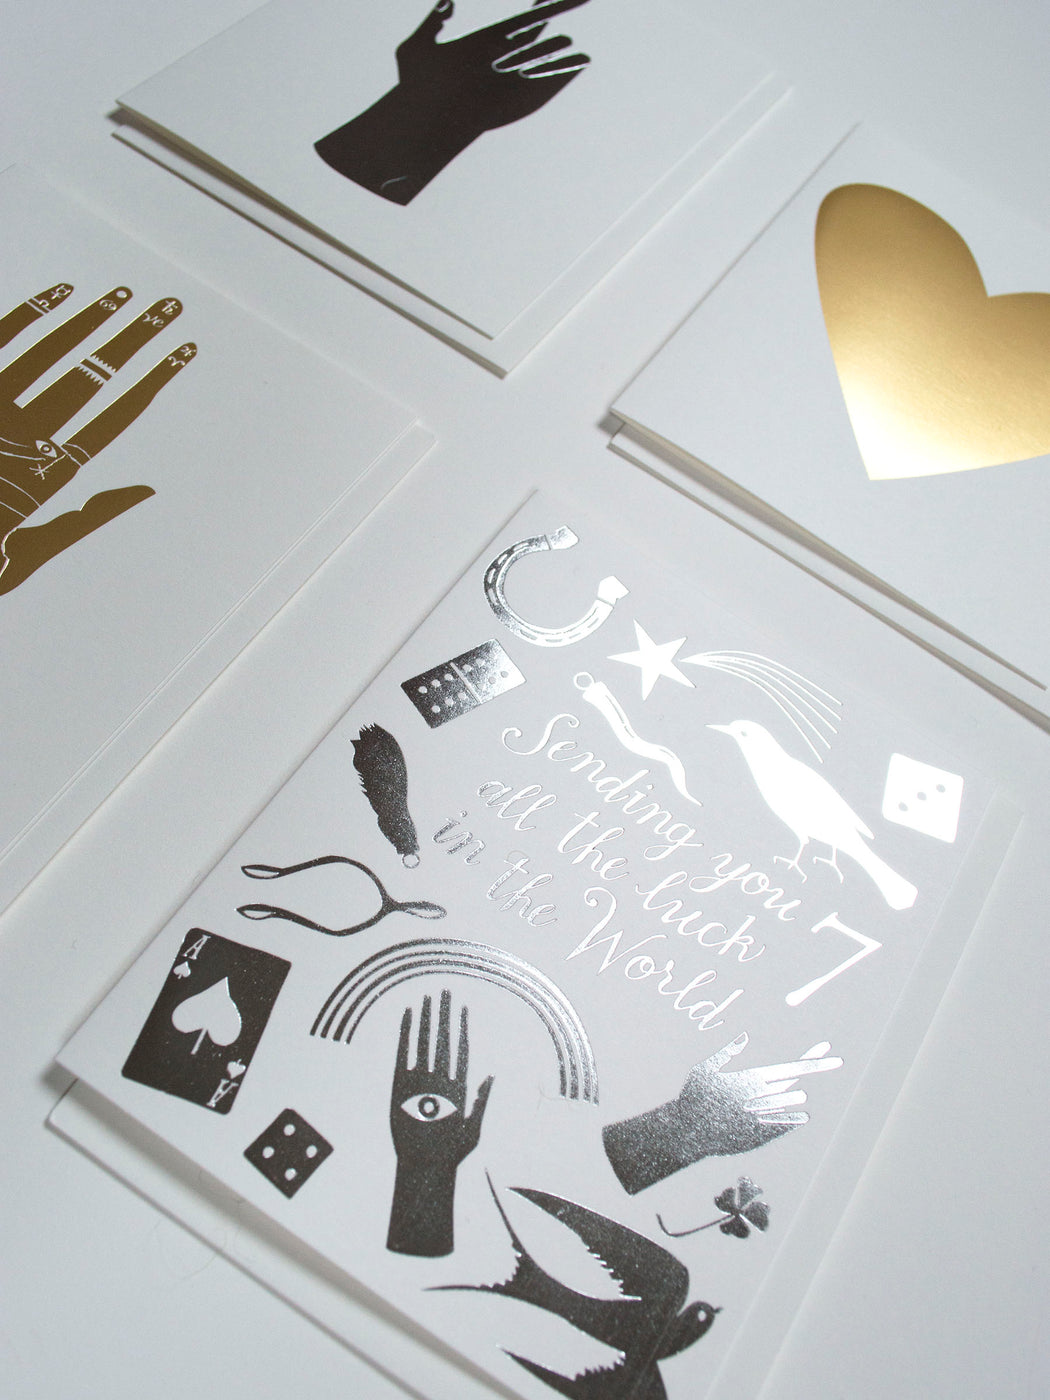 Classic Banquet metallic foil notecards, styled.